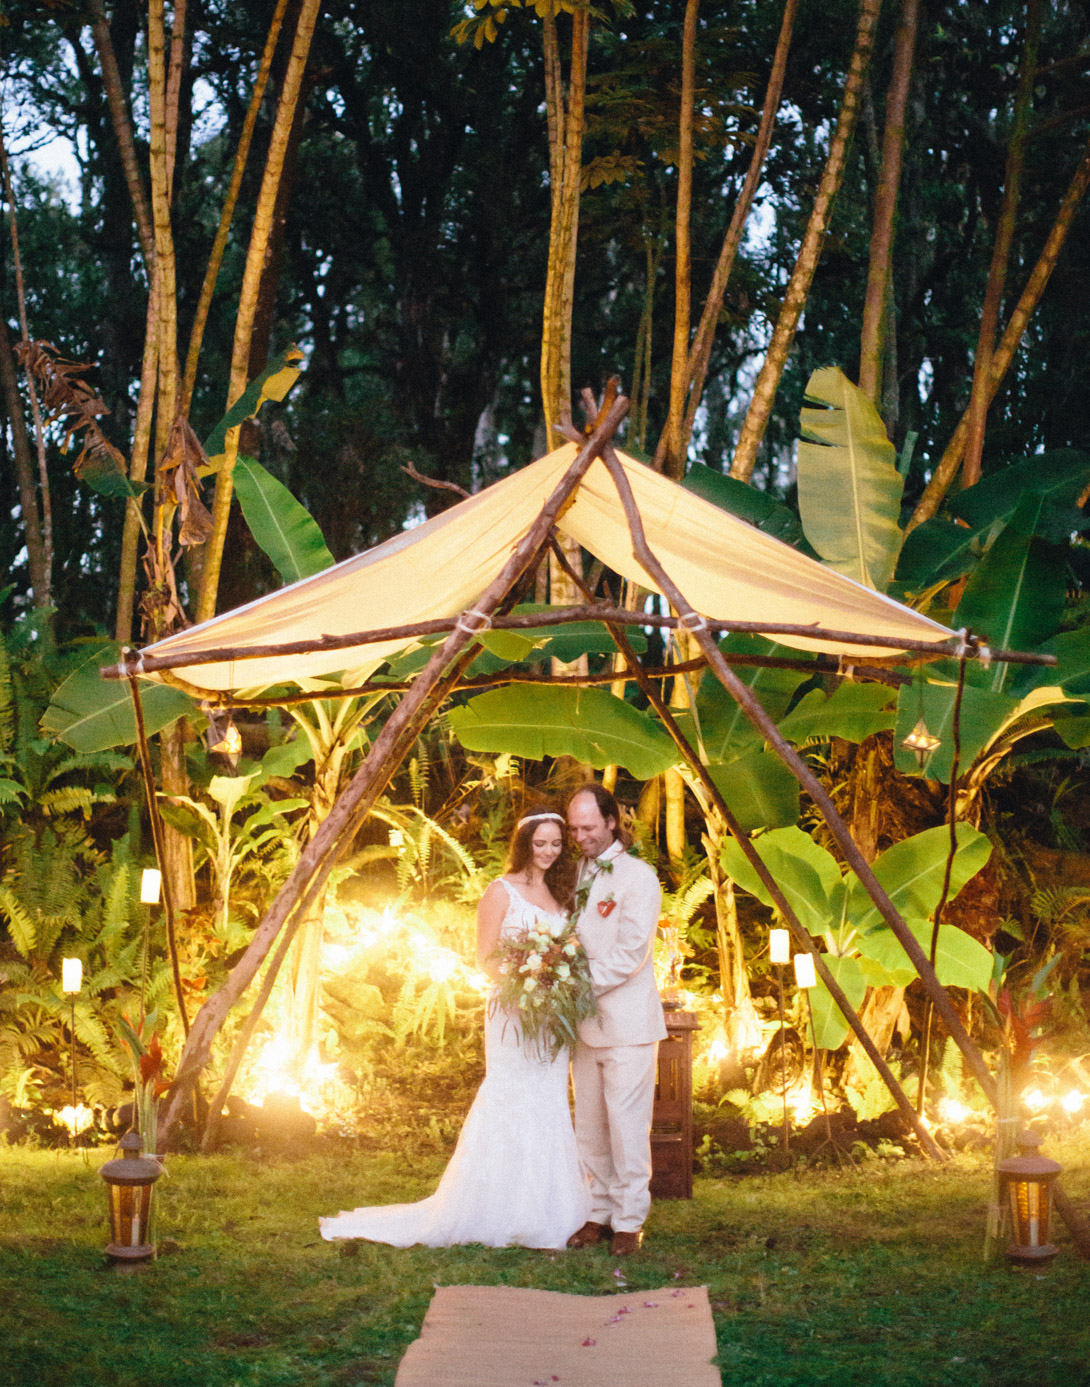 pahoa-wedding-big-island-hawaii-18